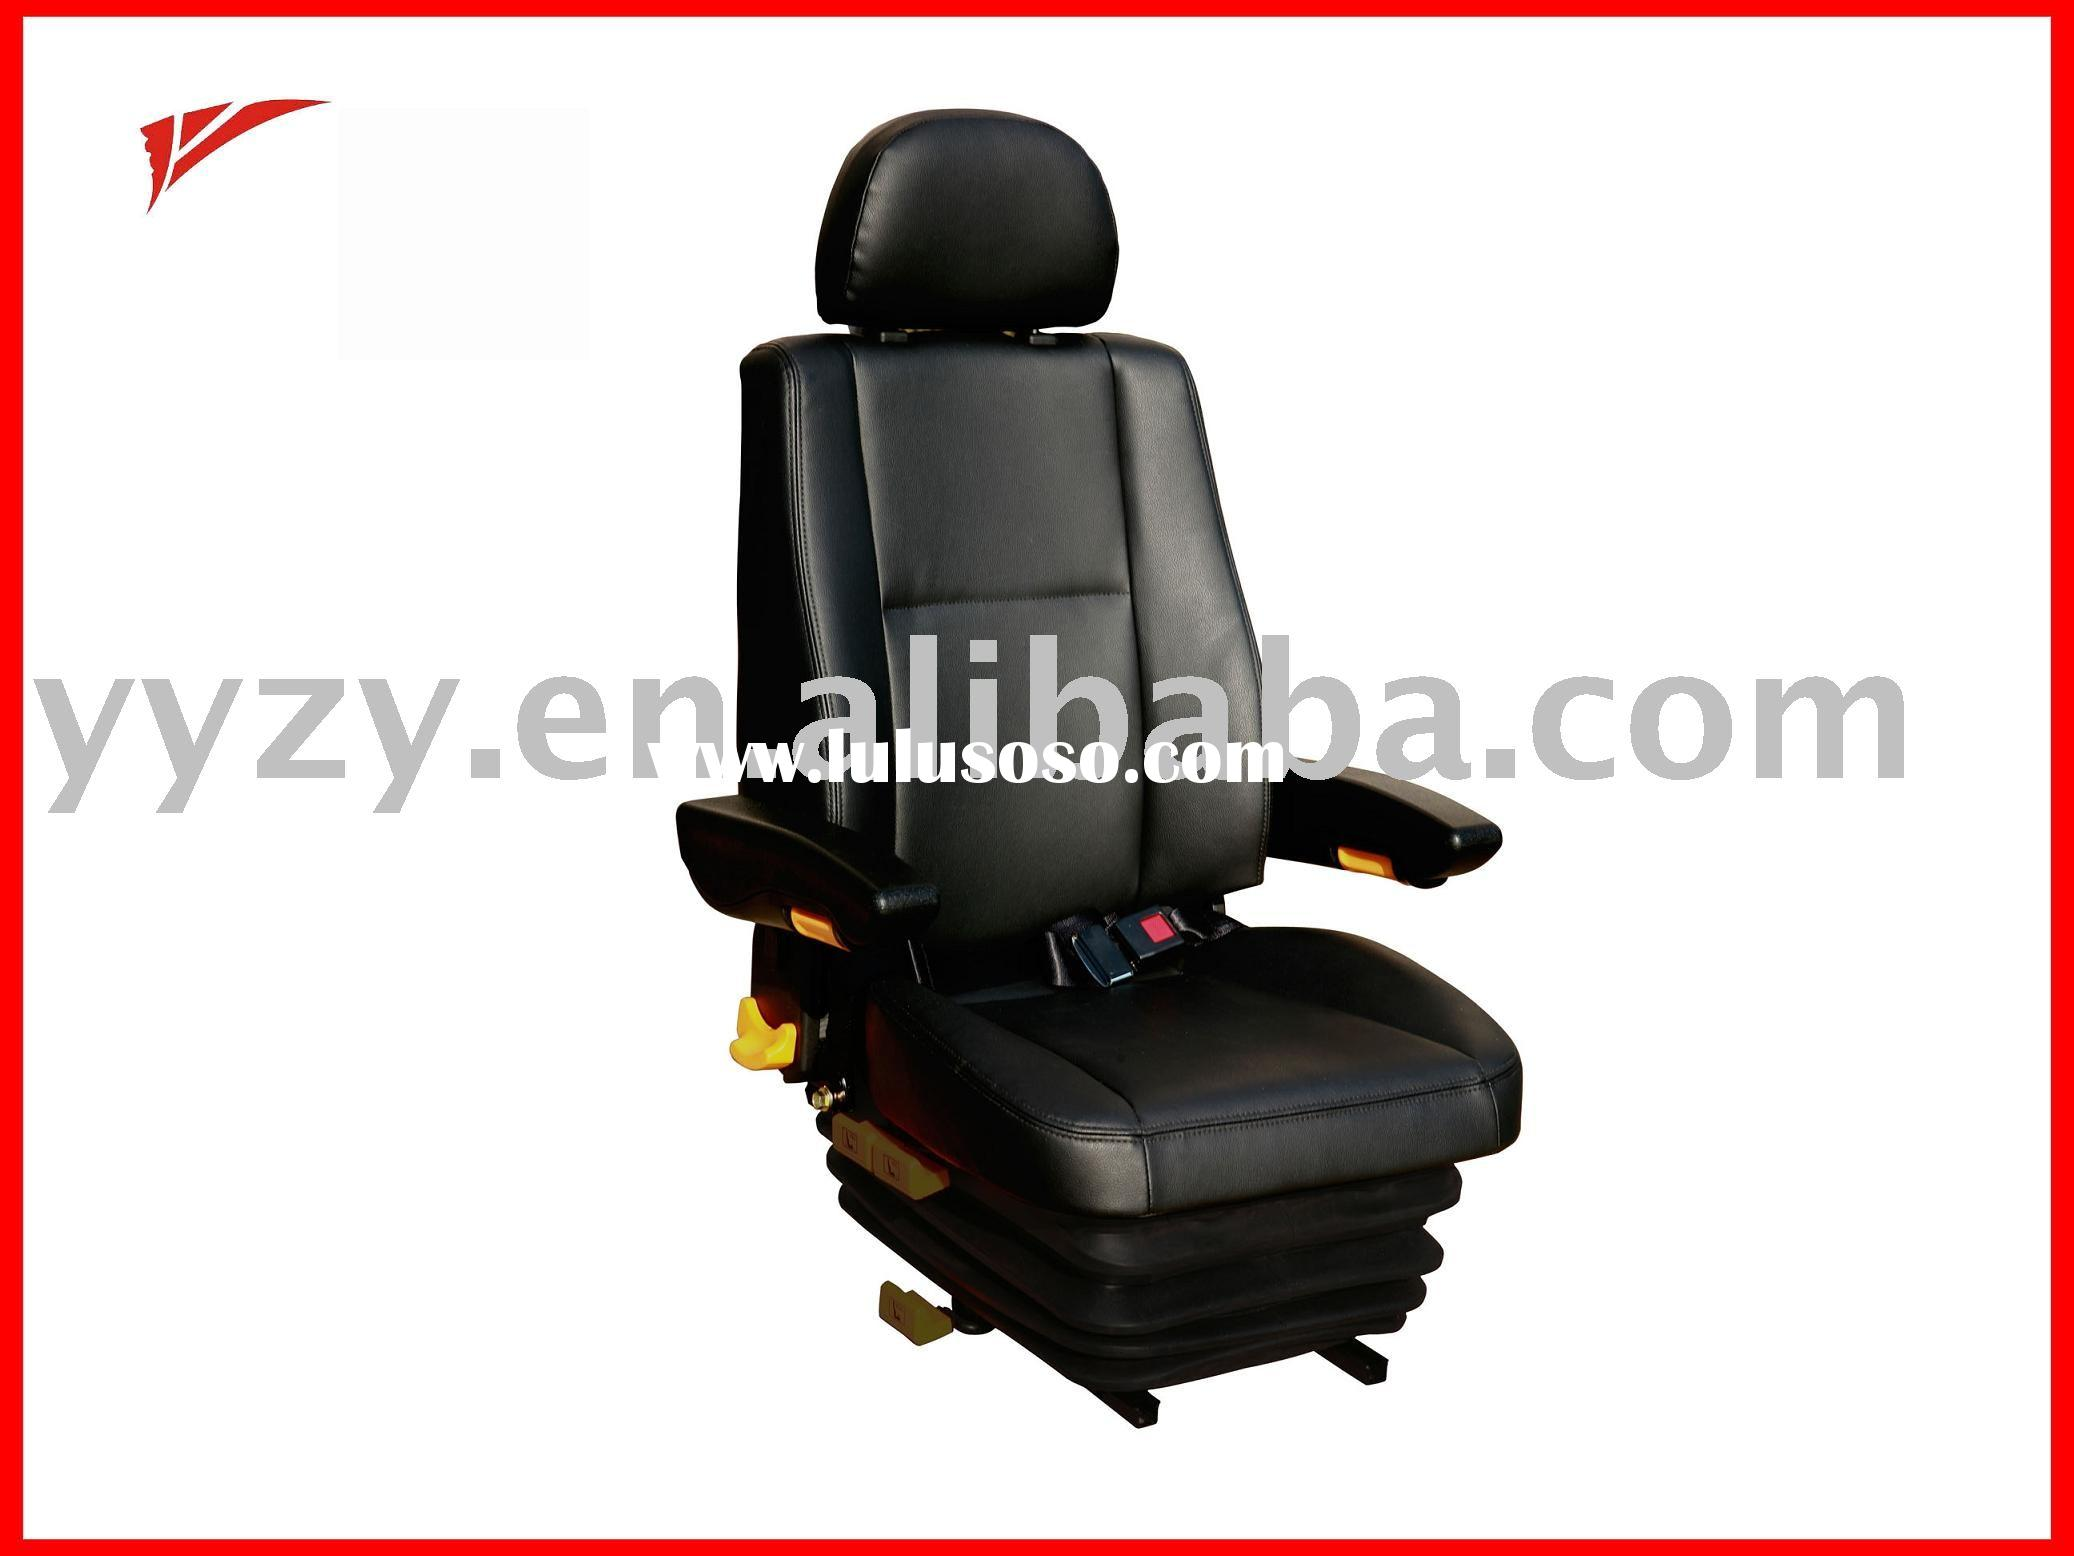 air suspension seat for heavy duty truck for sale price china manufacturer supplier 904089. Black Bedroom Furniture Sets. Home Design Ideas